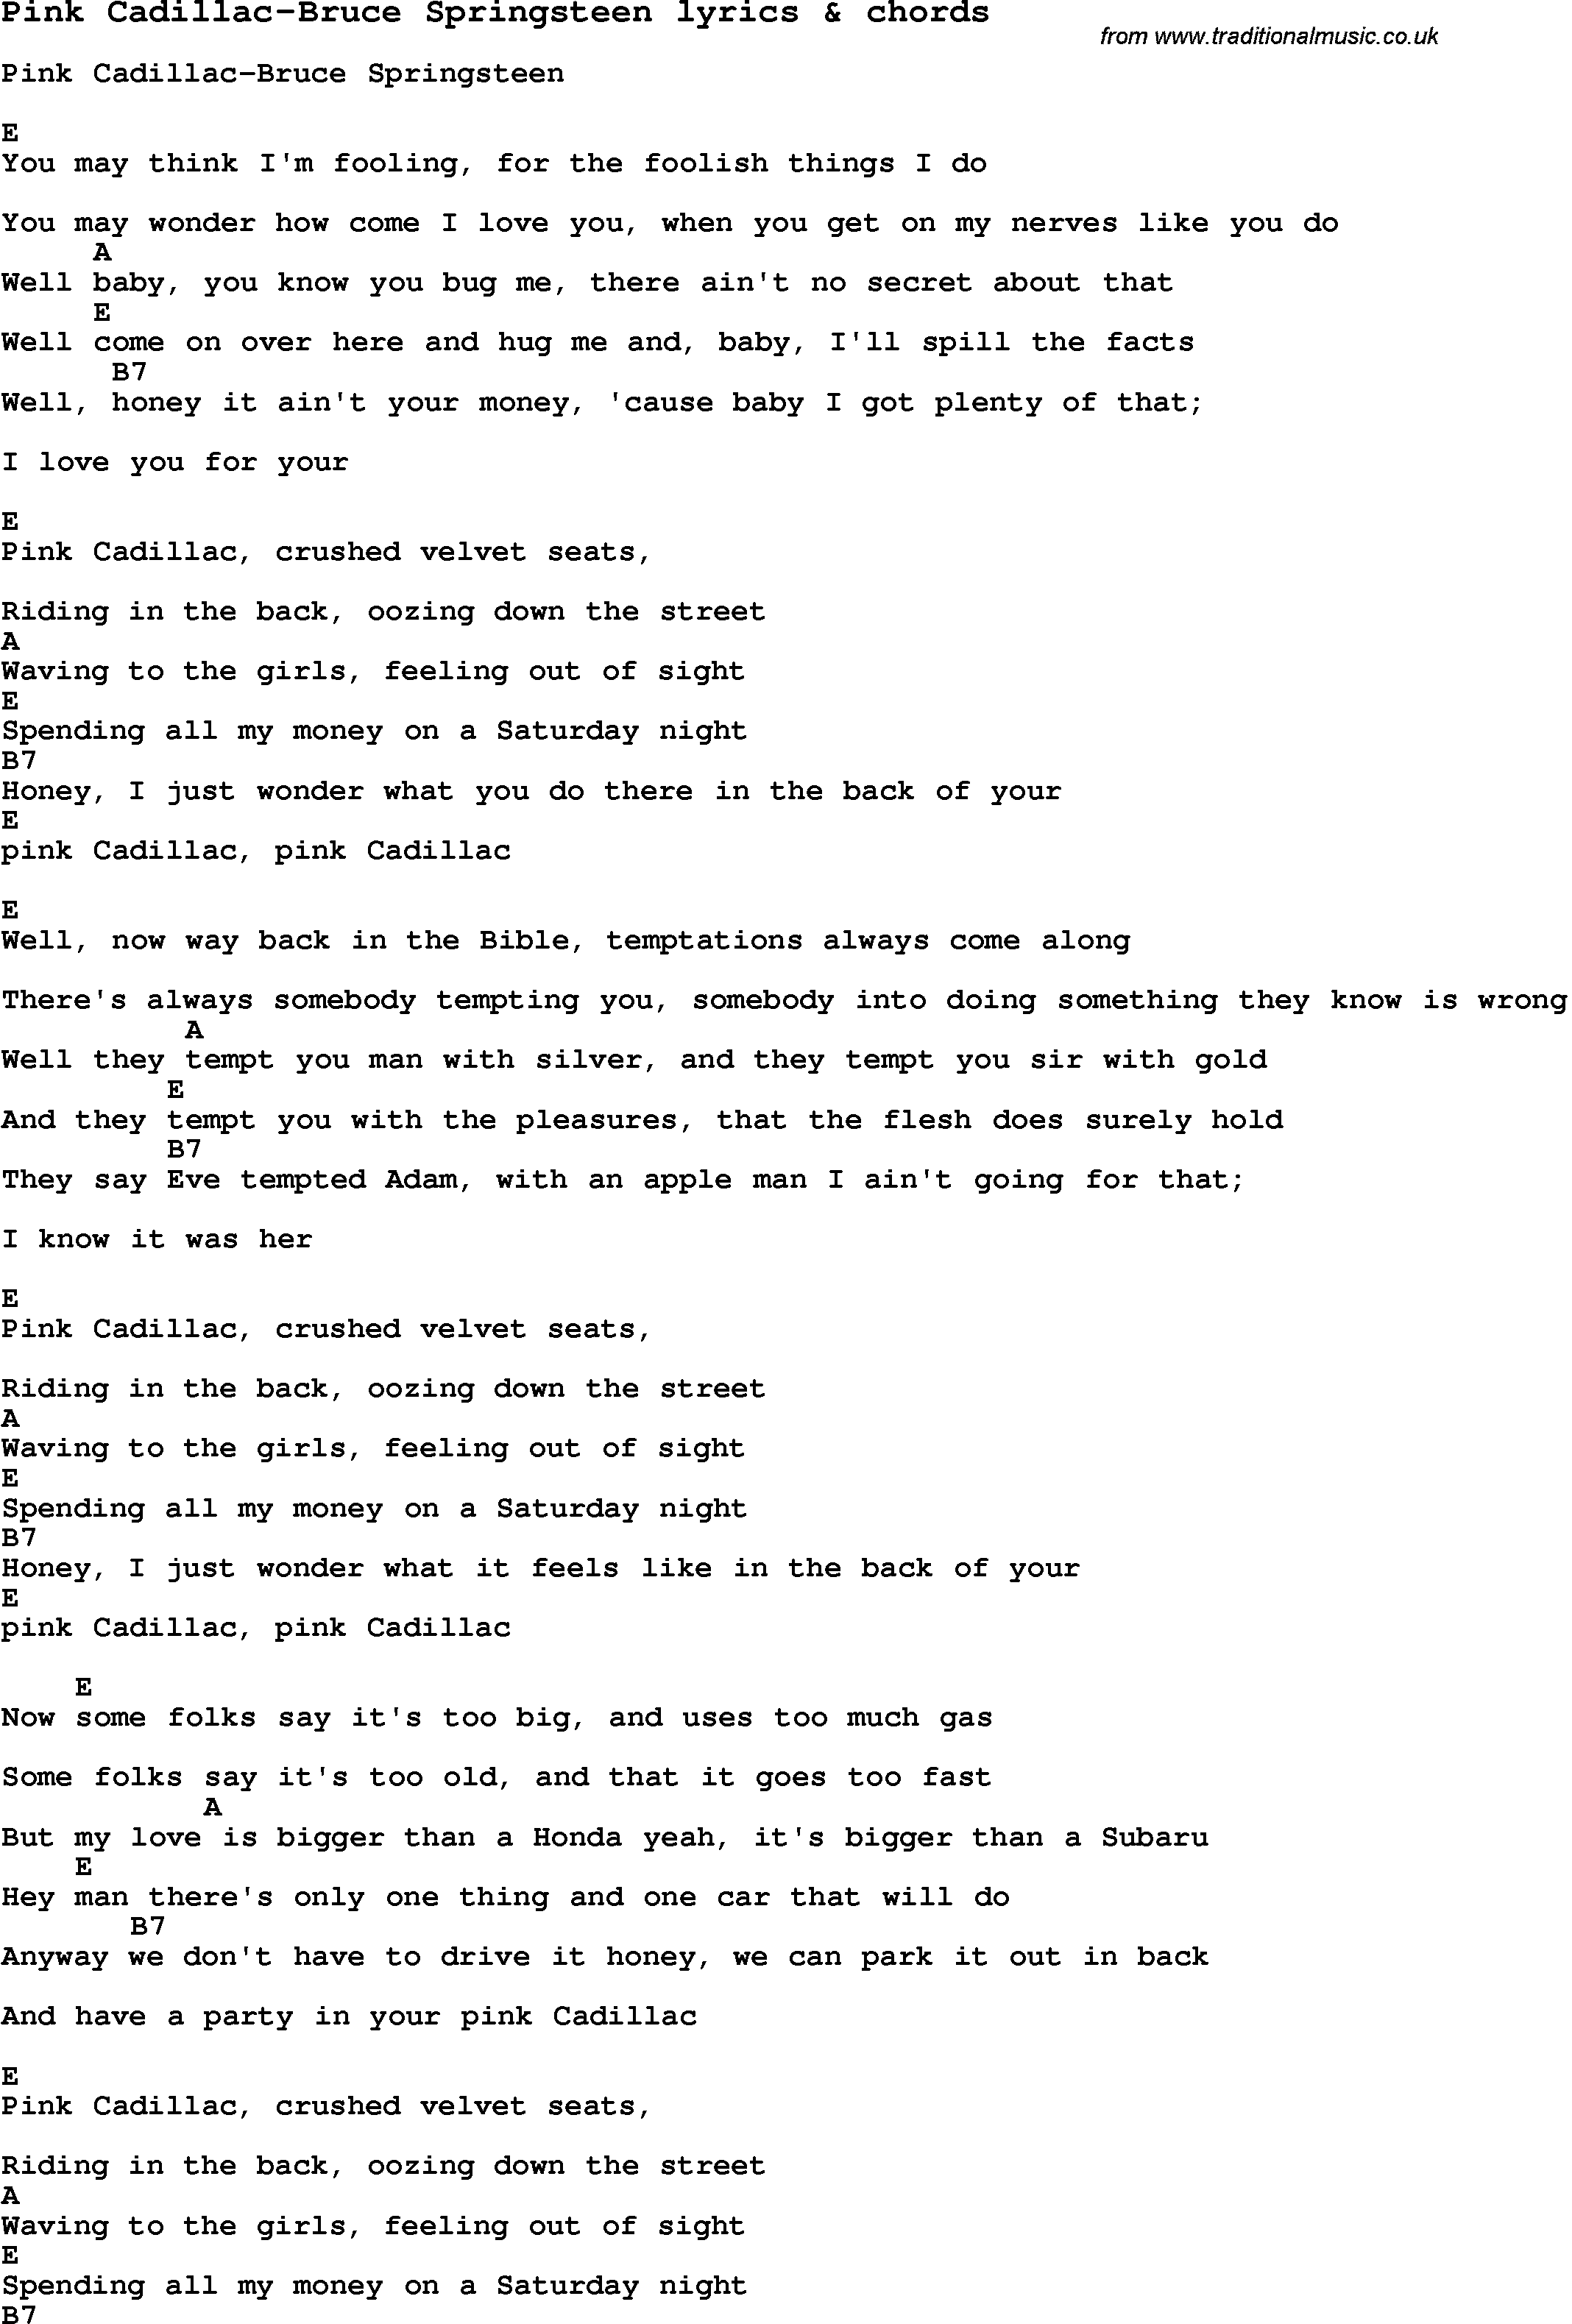 Love song lyrics for pink cadillac bruce springsteen with chords love song lyrics for pink cadillac bruce springsteen with chords for ukulele guitar hexwebz Images